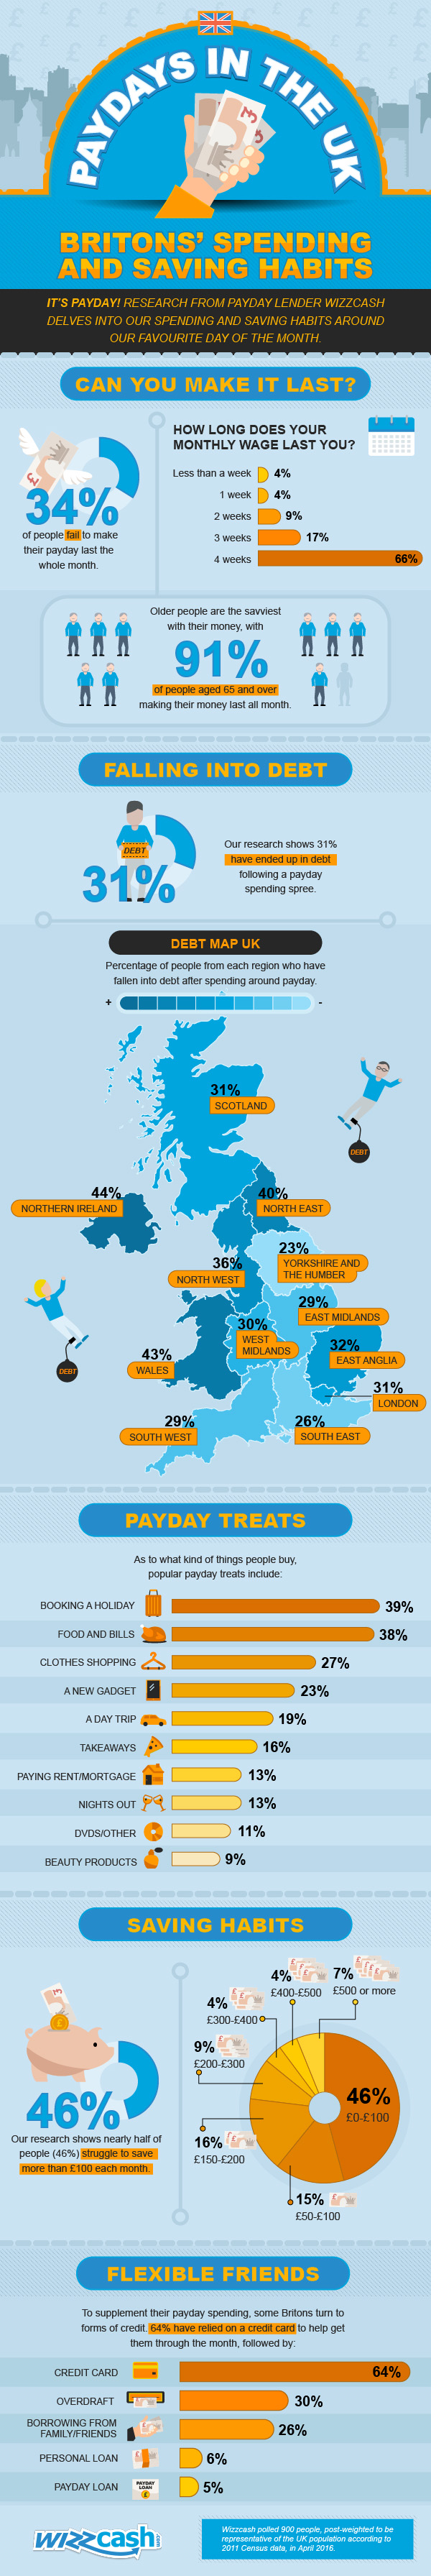 Britons' Spending And Saving Habits [Infographic]